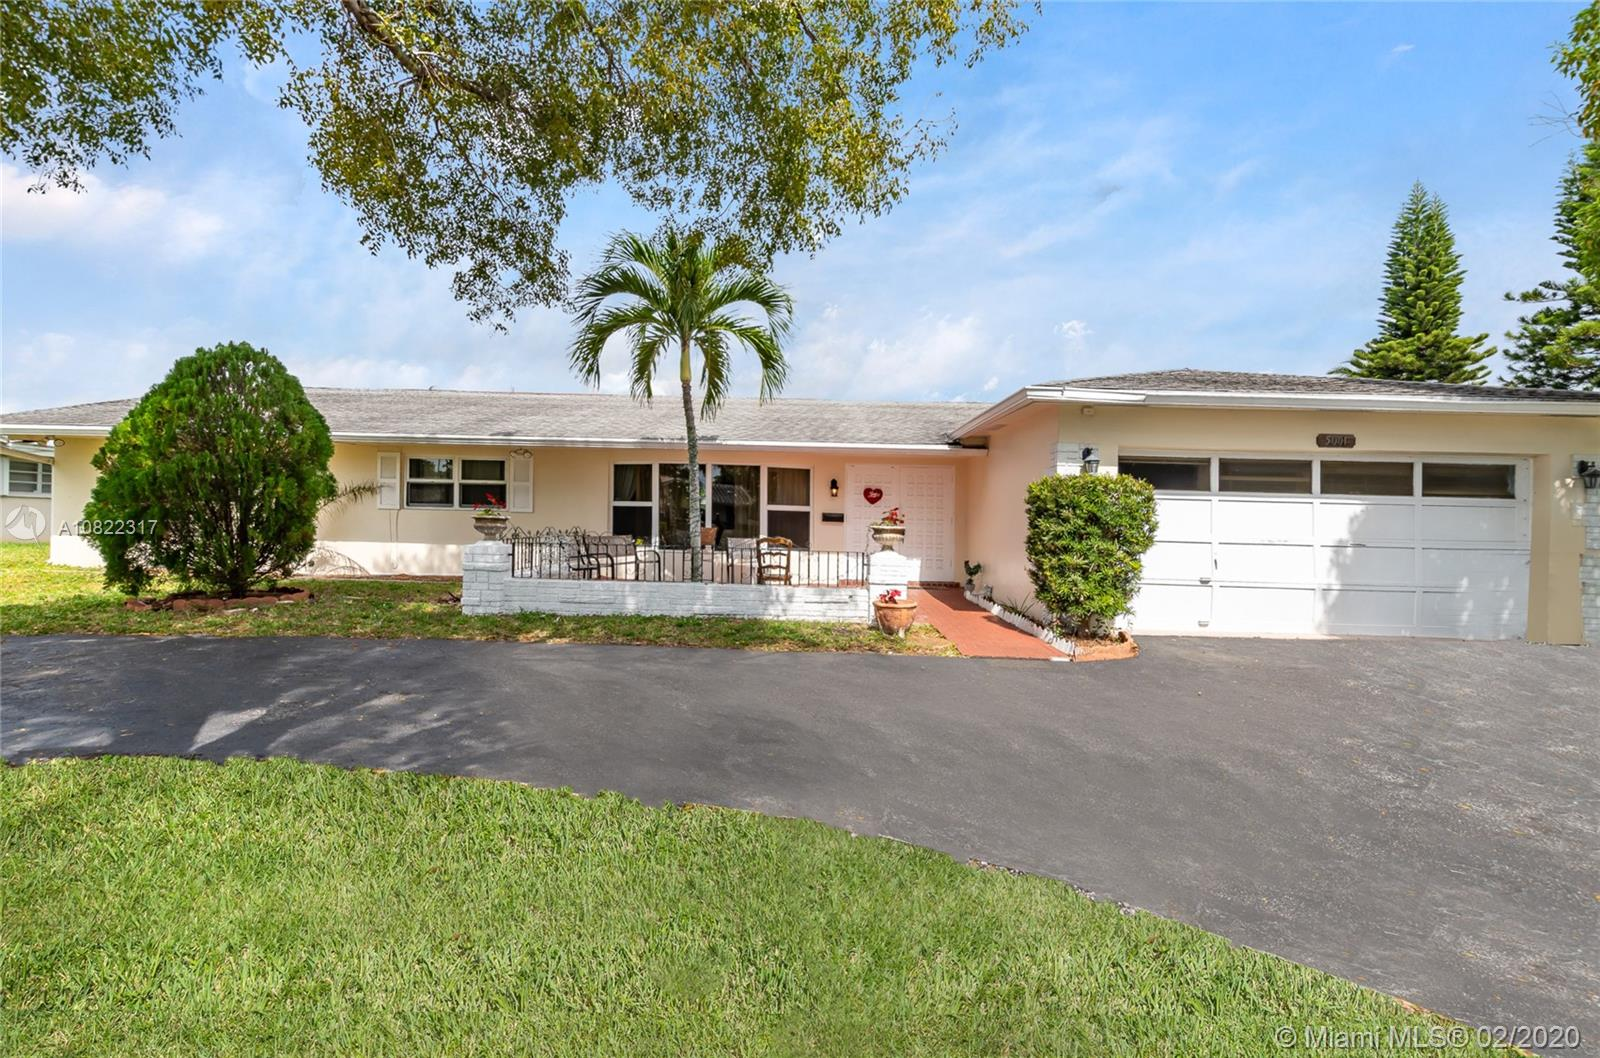 Hollywood Hills - 5001 Madison St, Hollywood, FL 33021